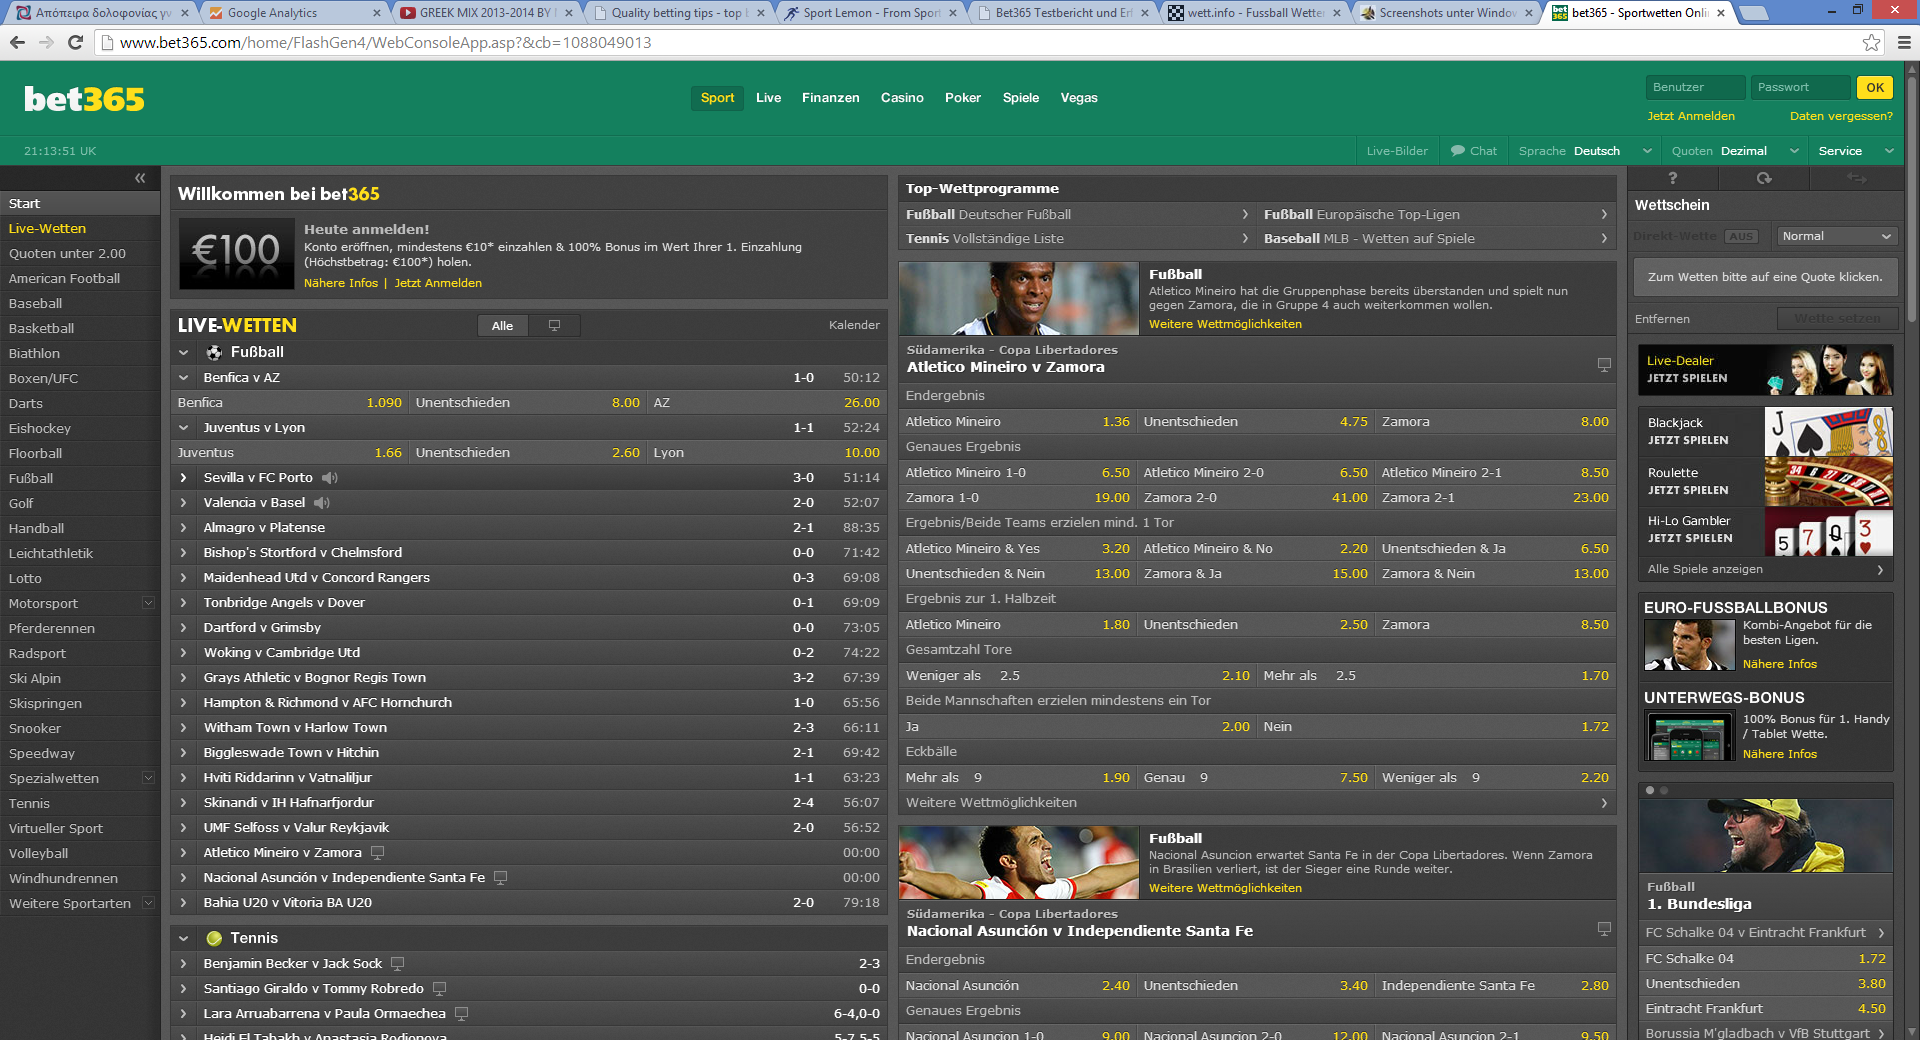 Bet365 Transfer Betting